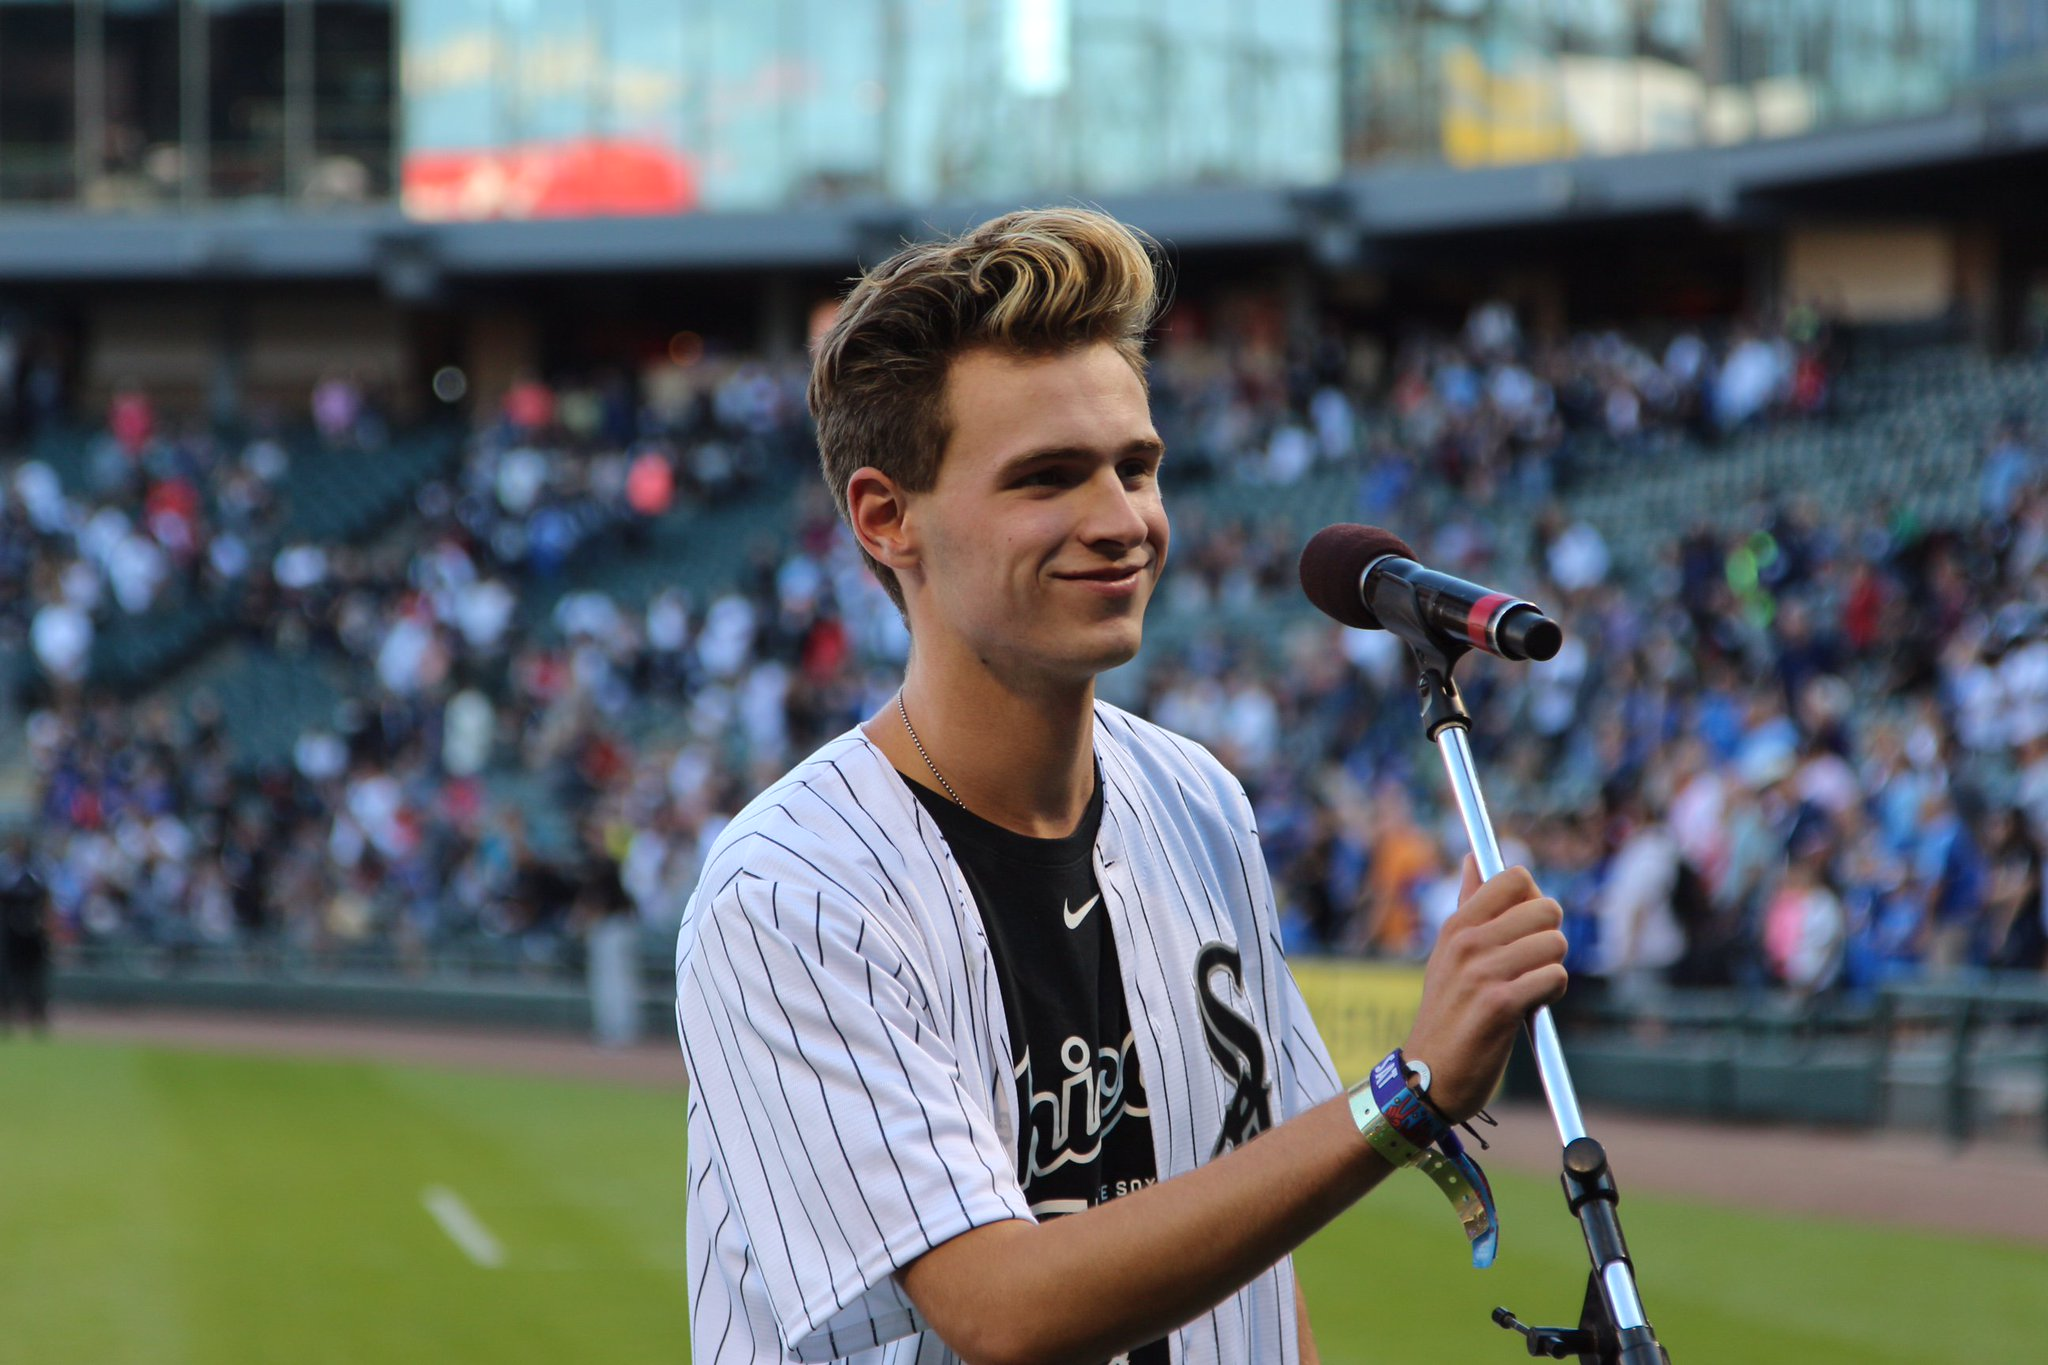 .@NBCTheVoice Season 11 contestant and West Dundee native, @rileyelmore, sang tonight's National Anthem! #SoxGameDay https://t.co/vJsZufoHRi